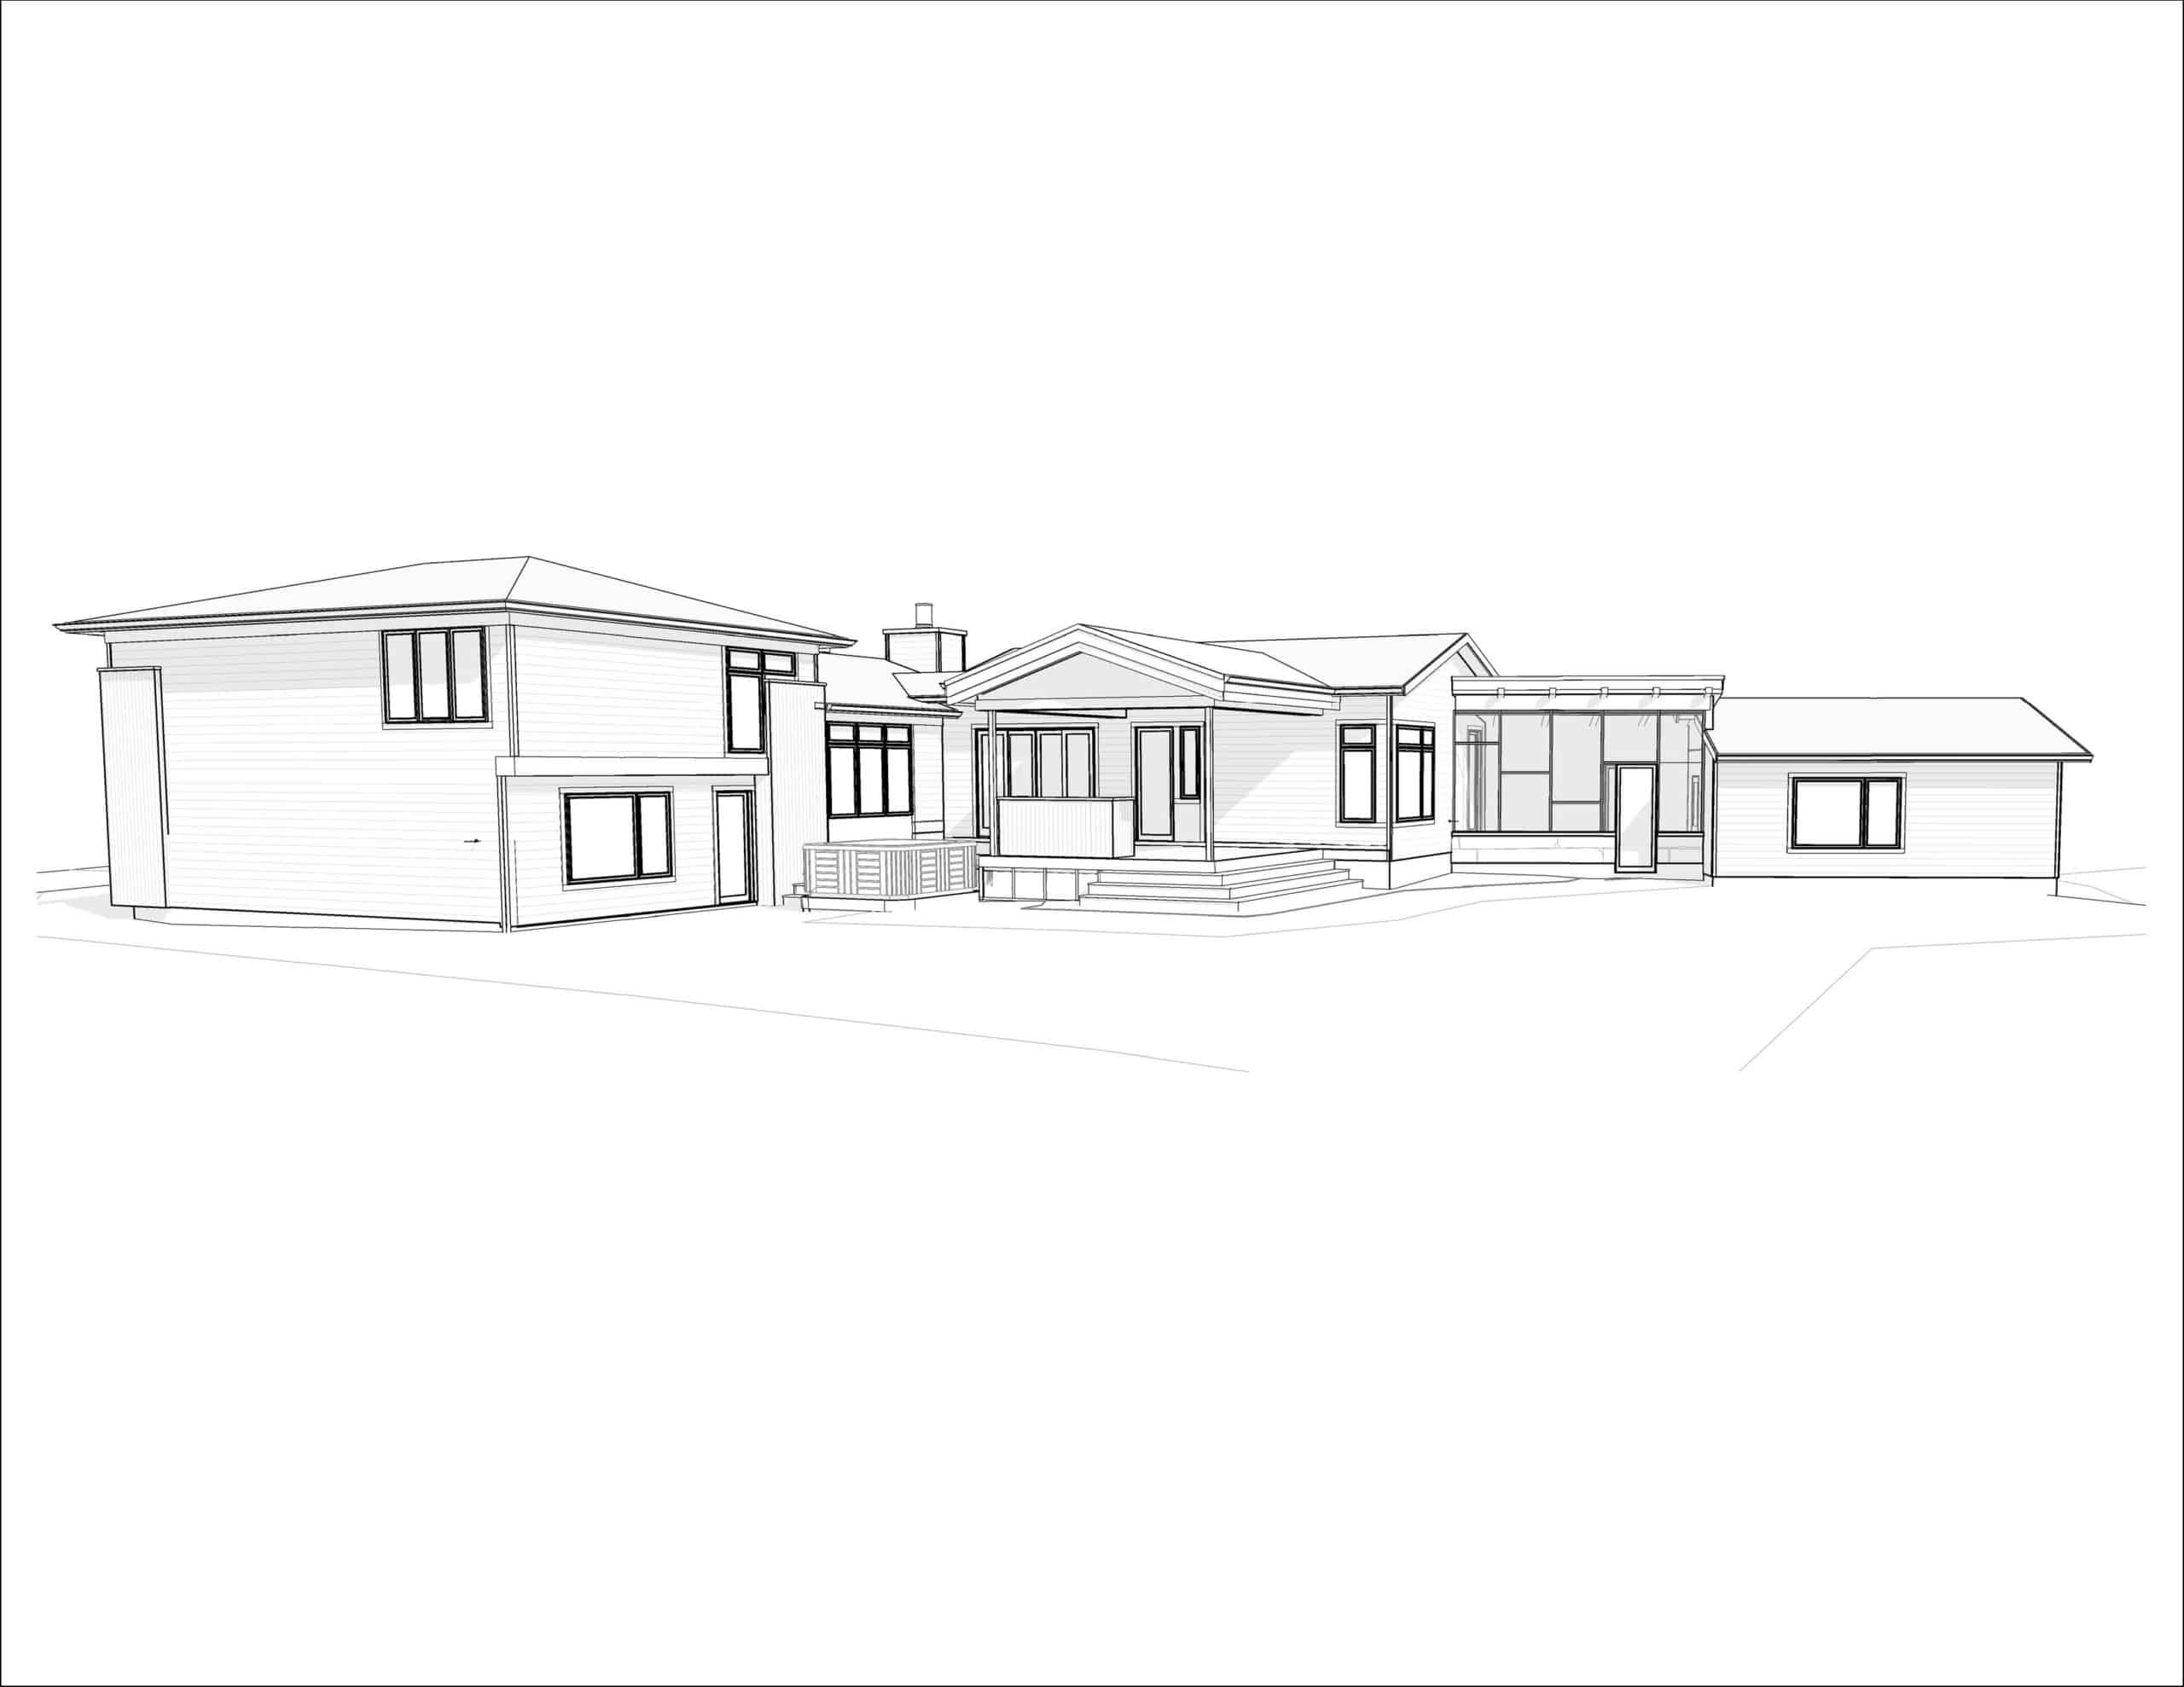 Lawson Place - Modern Renovation rear perspective design